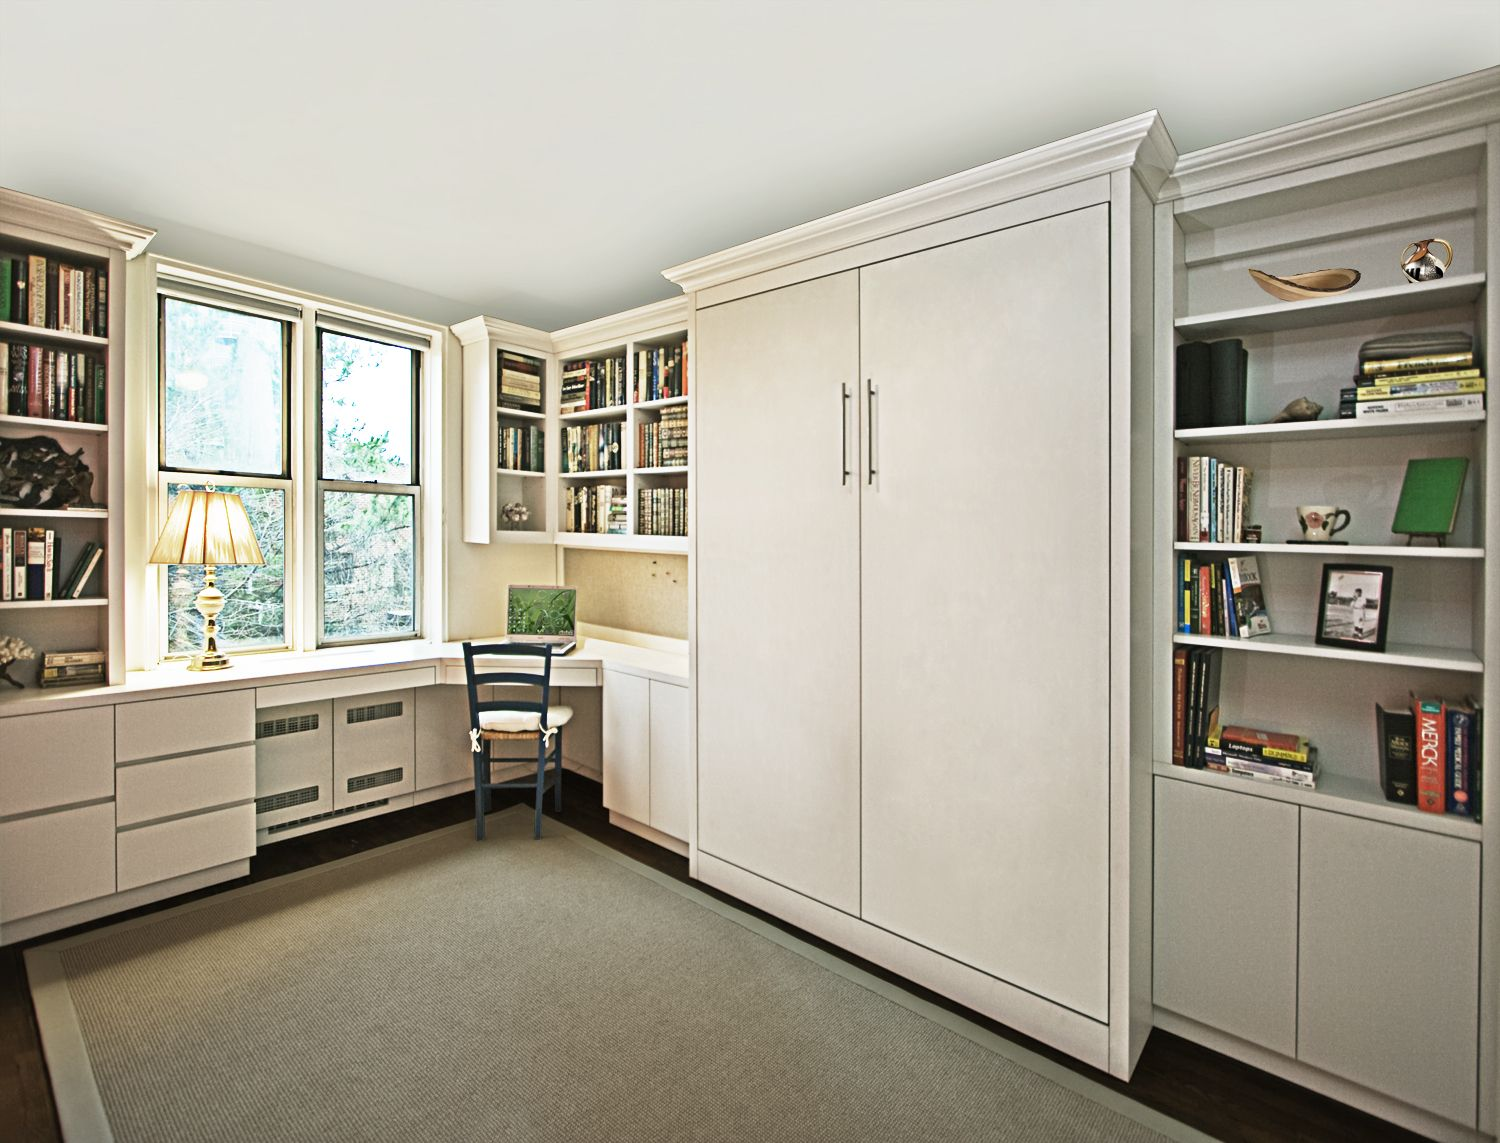 Delicieux View Images Of Some Of The Murphy Beds From Manhattan Cabinetry. We Offer  An Almost Unlimited Selection Of Materials And Finishes.